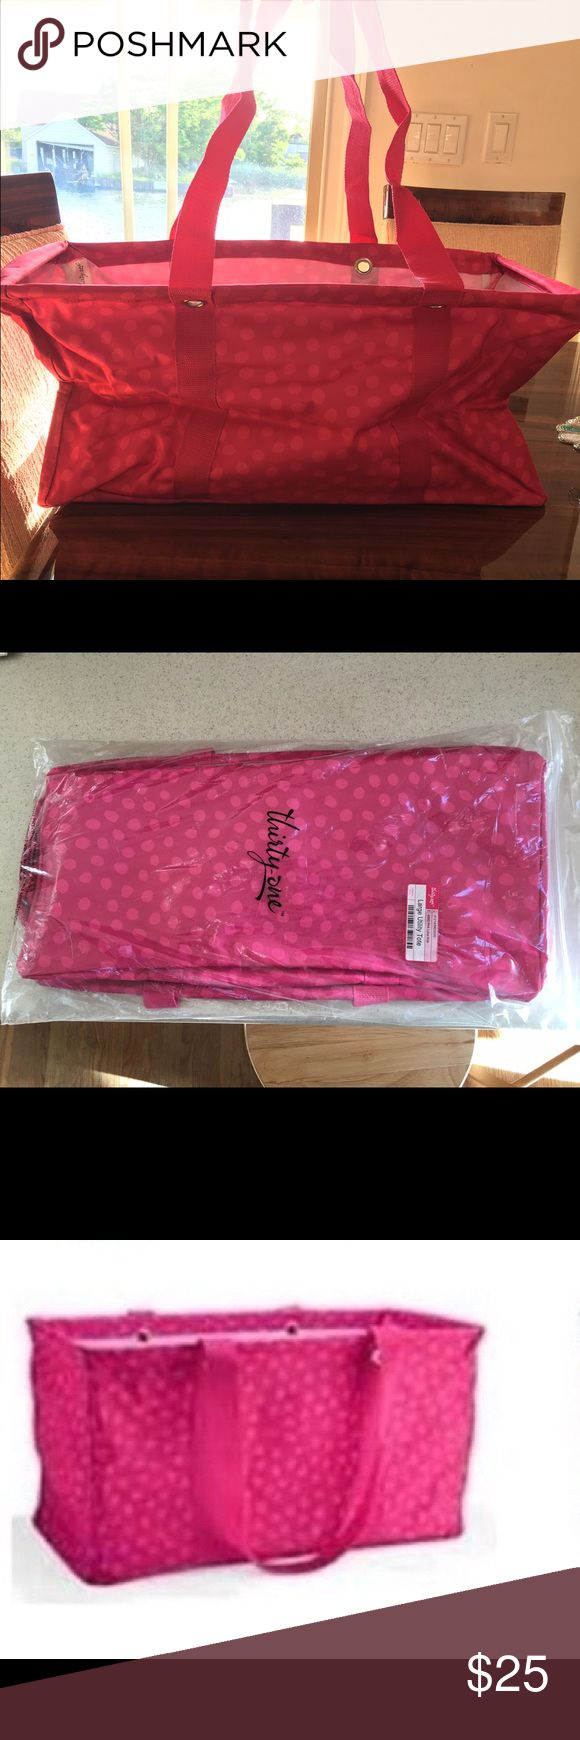 Brand new Thirty one large utility tote Brand new polka dot thirty one utility tote Thirty One Bags Totes